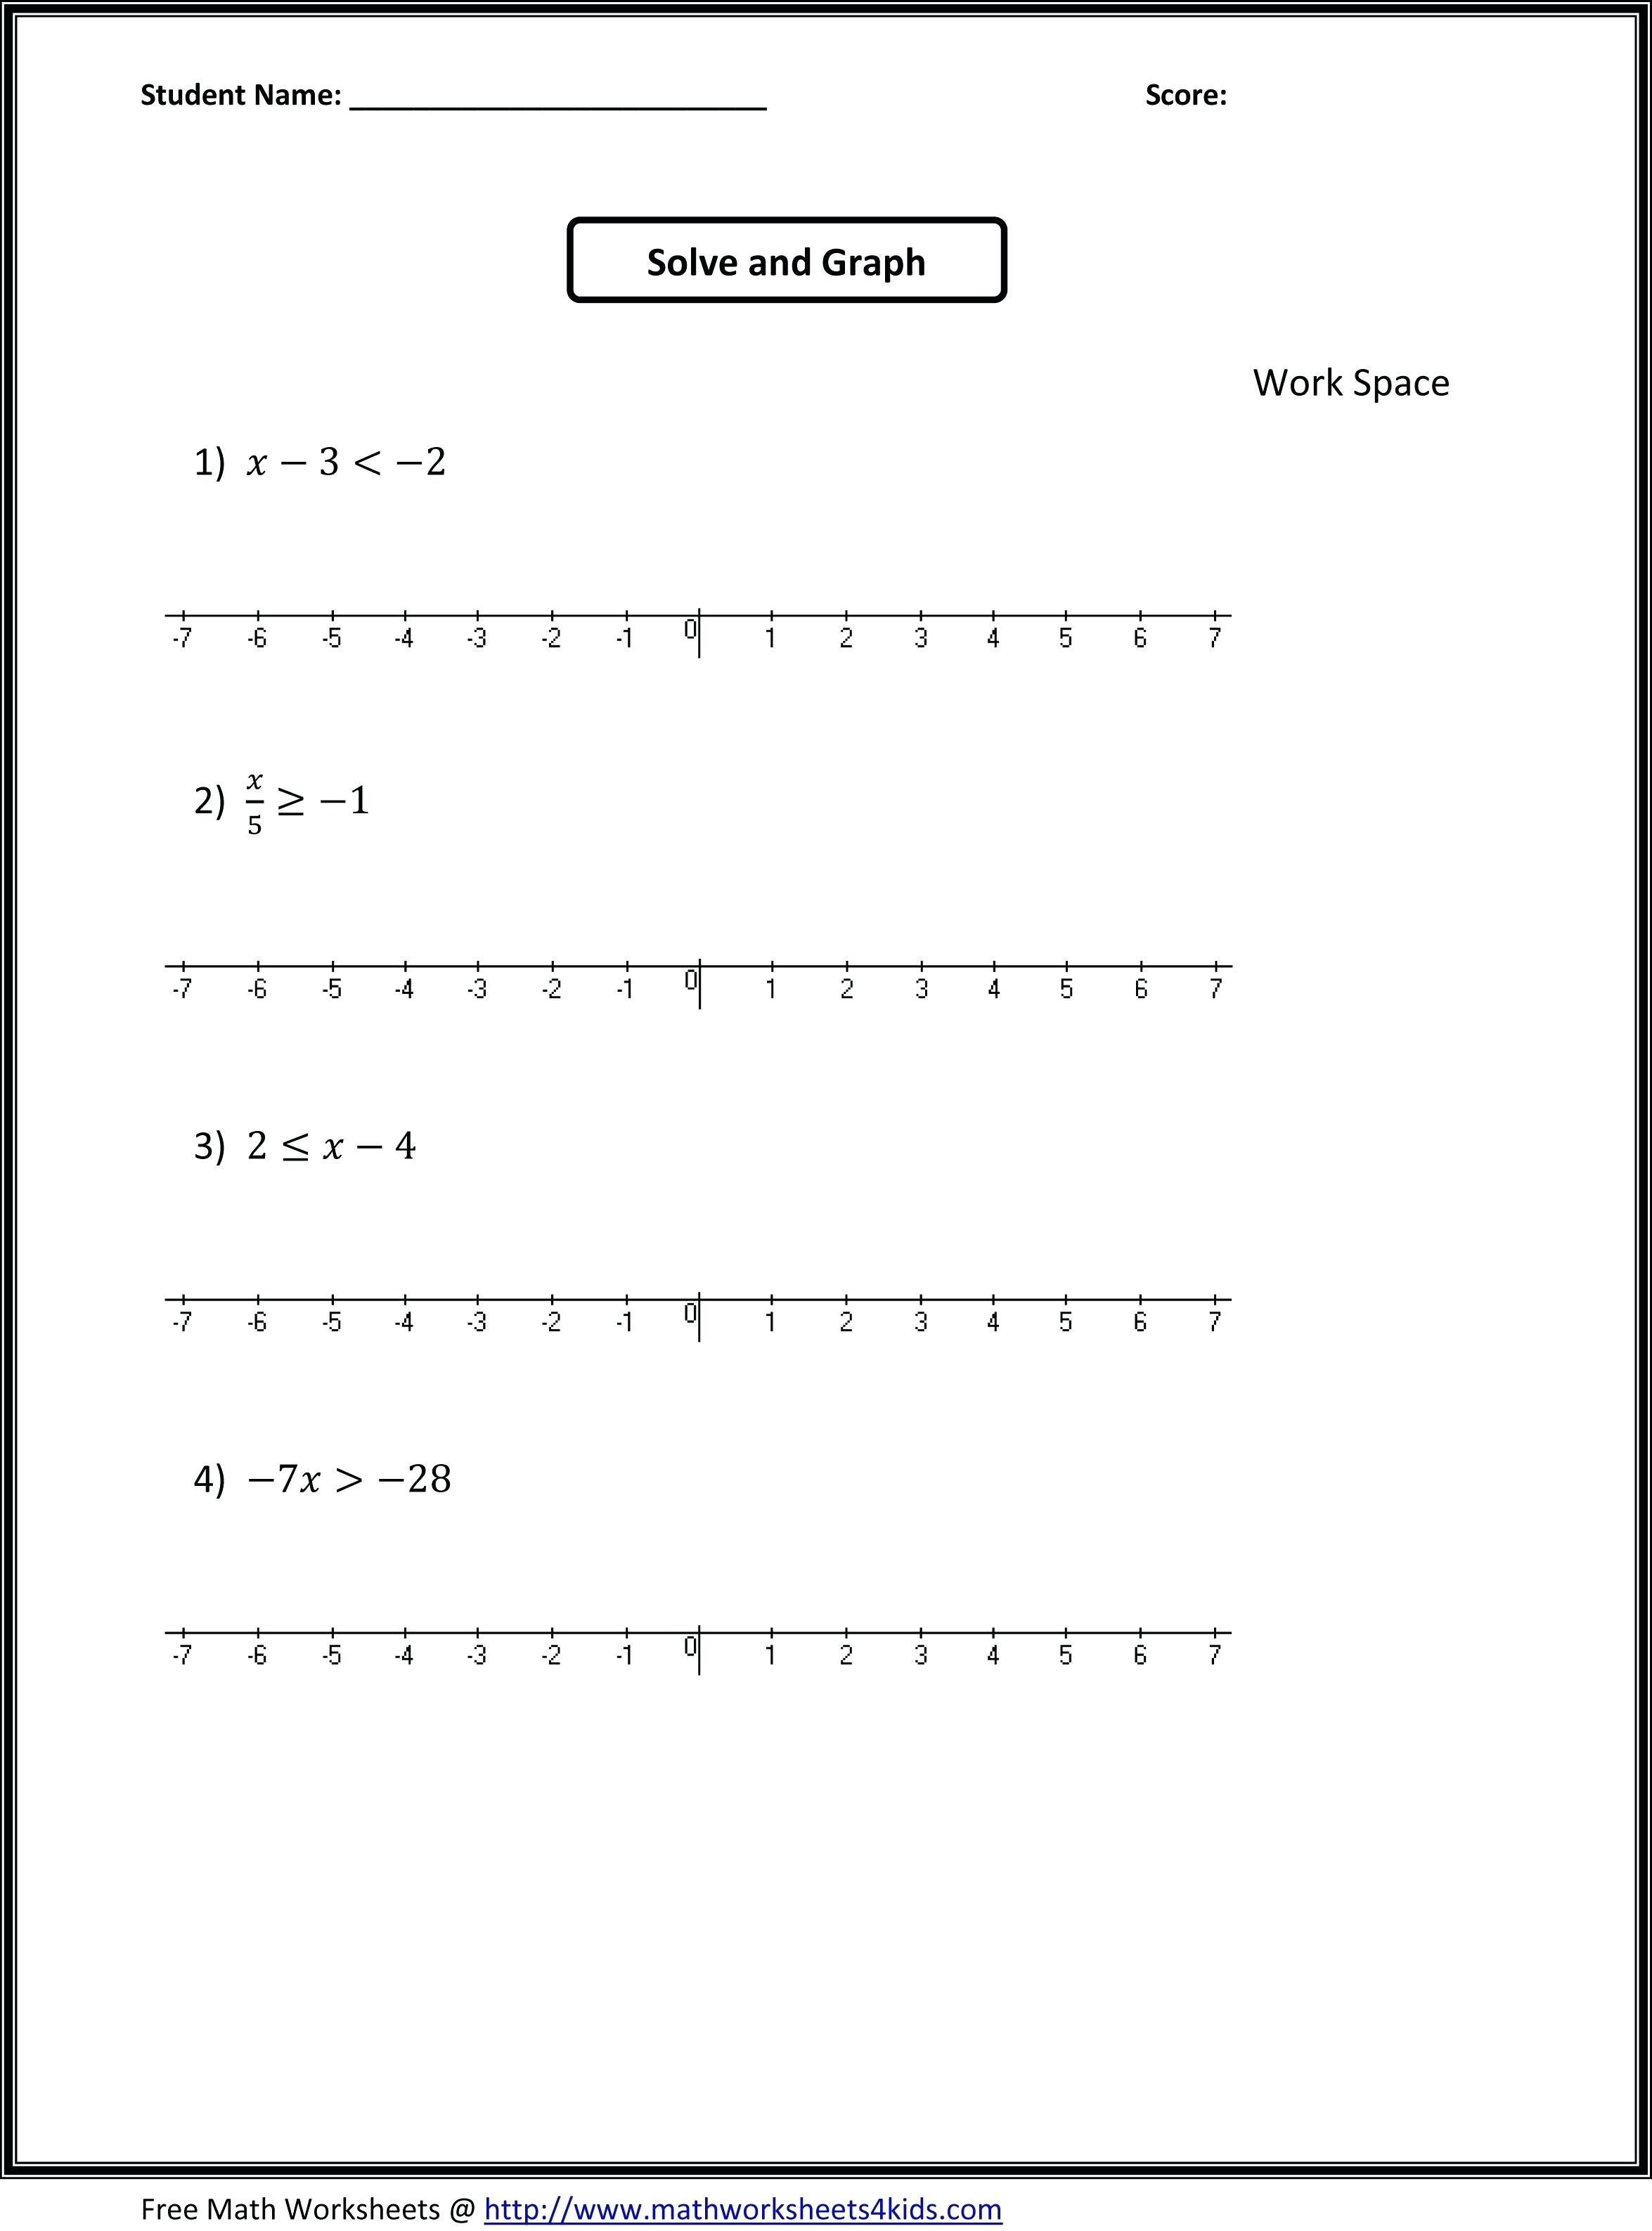 37 Clever Math Practice Worksheets Design